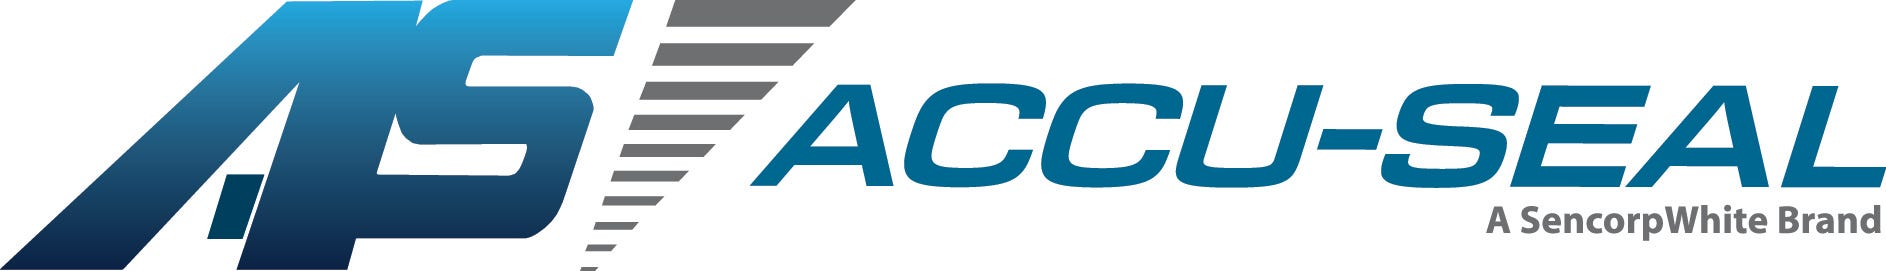 Accuseal / Forum